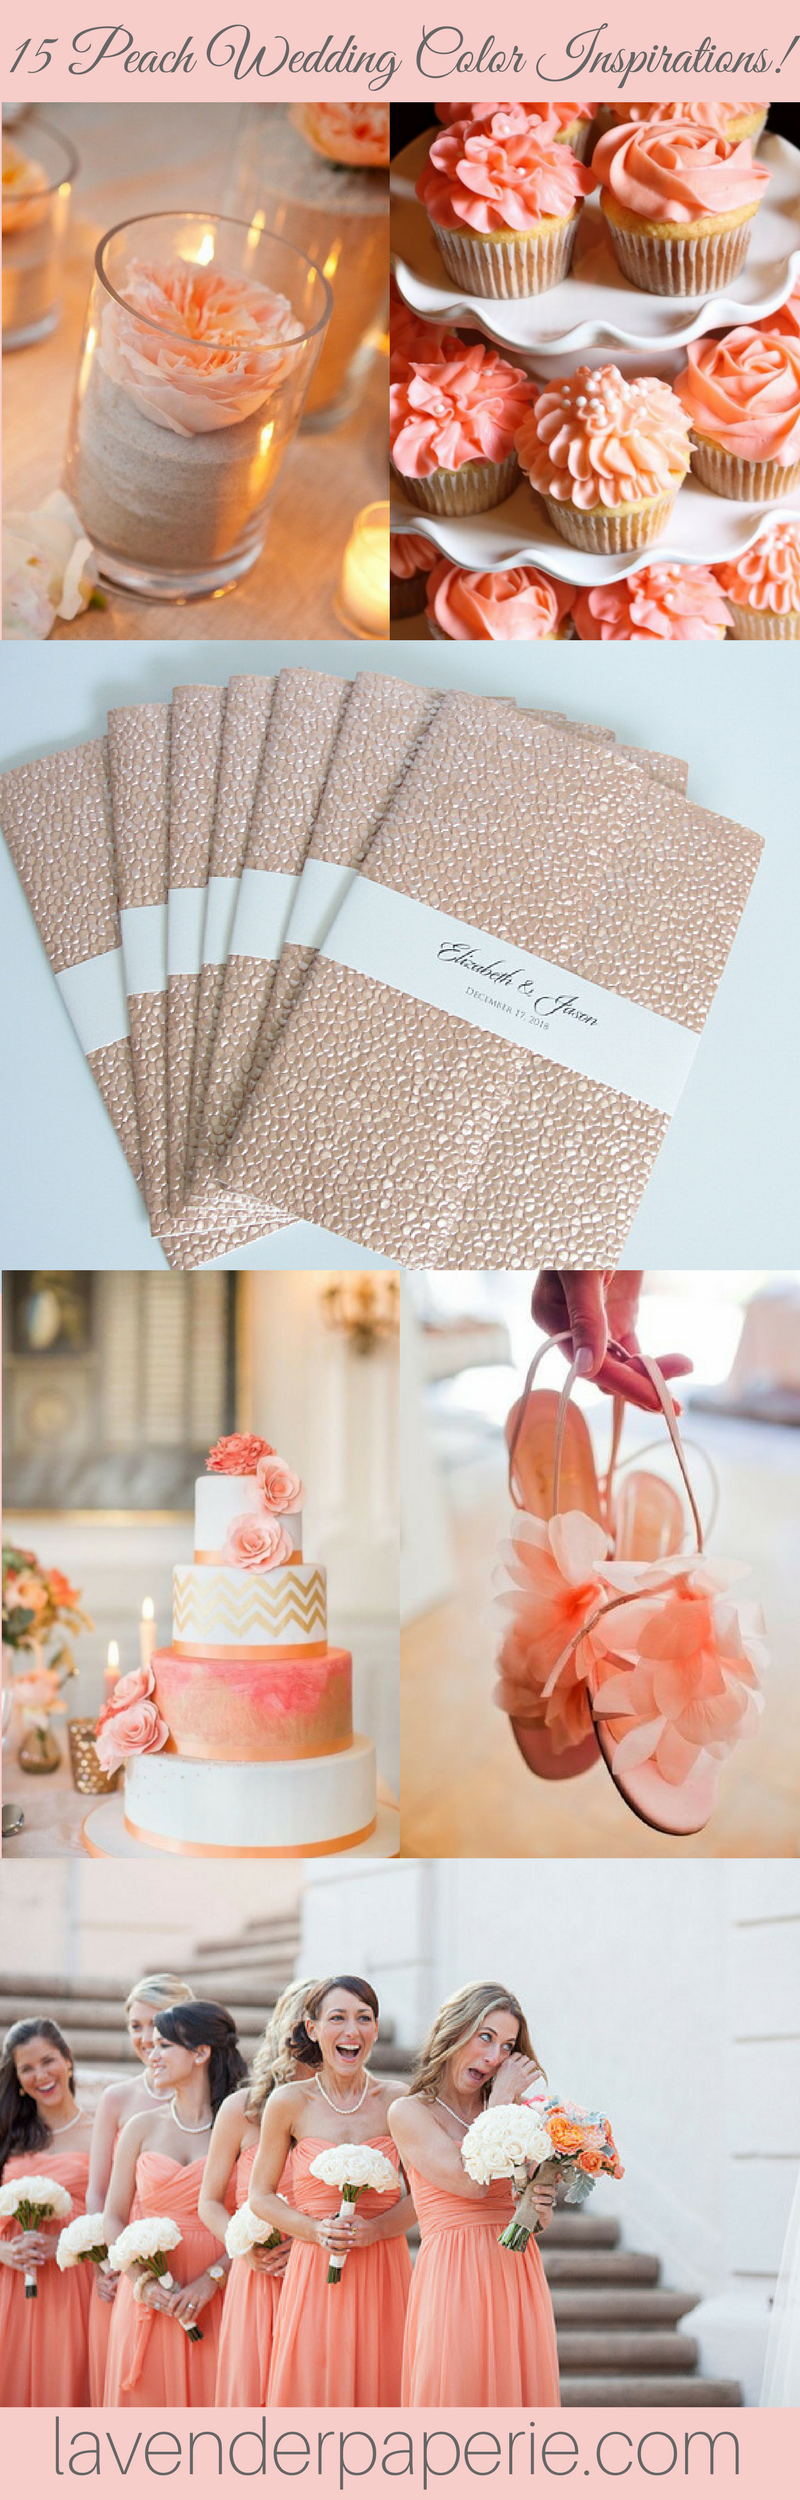 Wedding decoration ideas peach   Peach Wedding Color Inspirations  party ideas  Pinterest